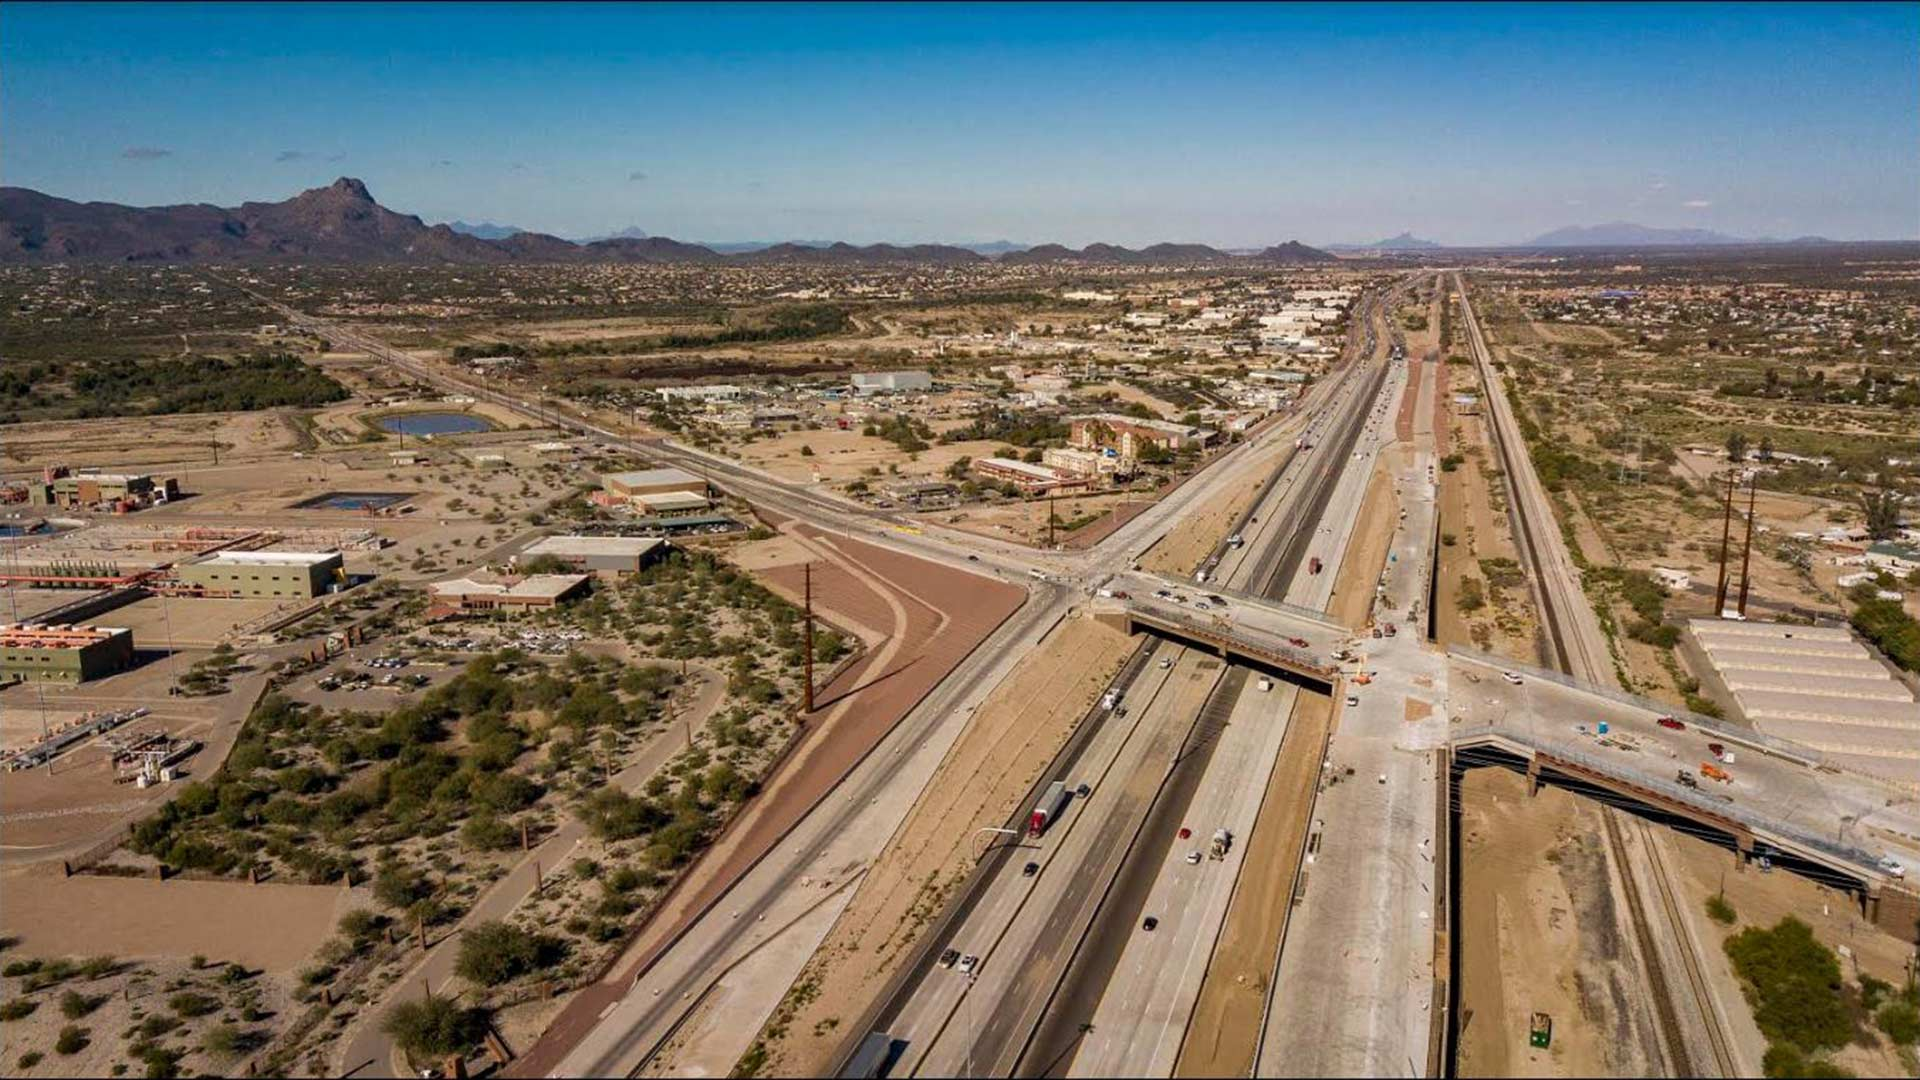 The intersection of Ina Road and Interstate 10 seen in a photo posted on the Arizona Department of Transportation Facebook page, March 14, 2019.